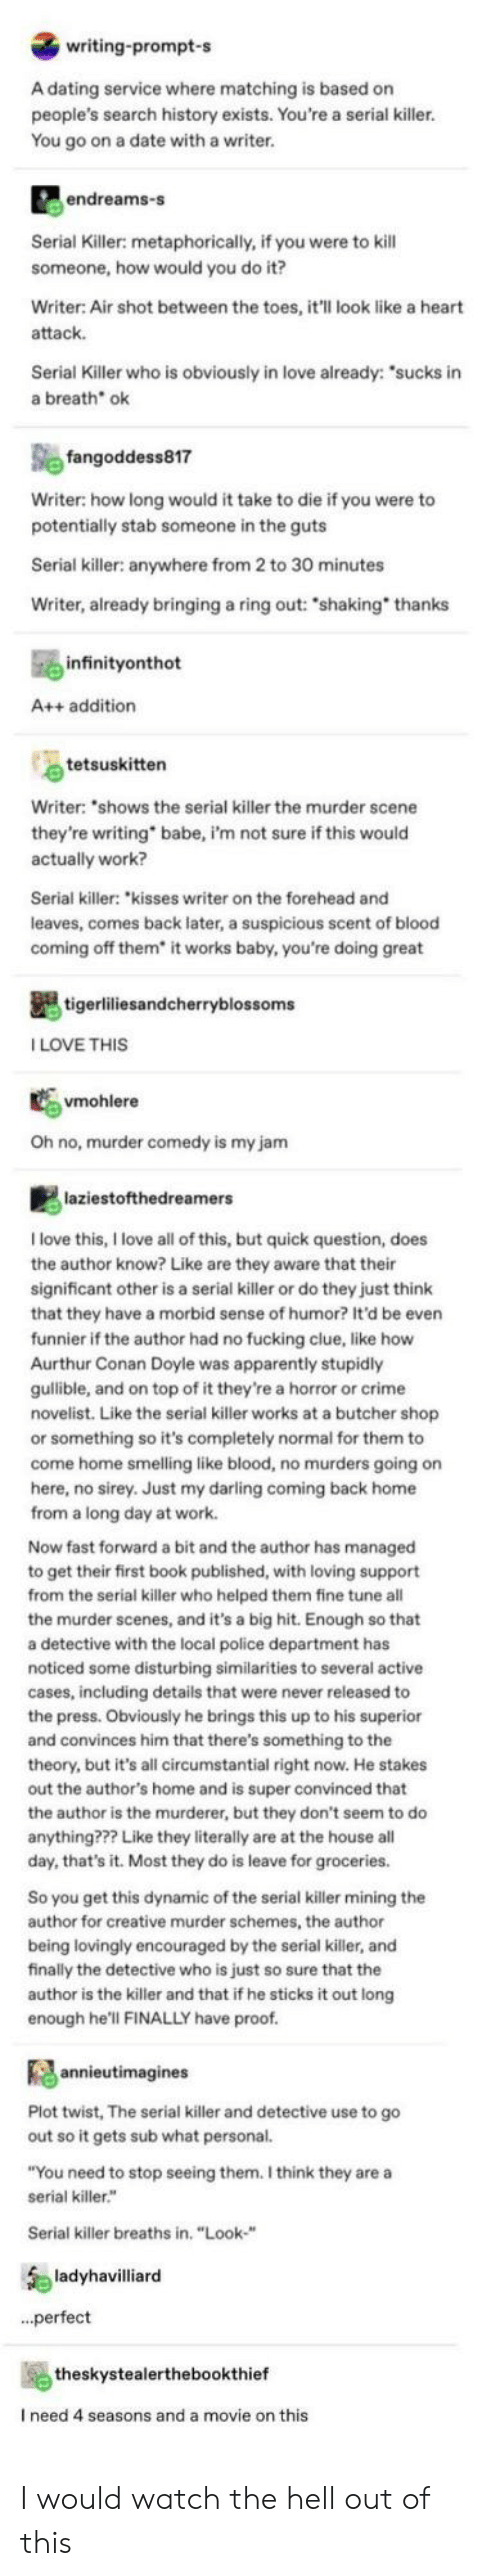 "My Jam: writing-prompt-s  A dating service where matching is based on  people's search history exists. You're a serial killer.  You go on a date with a writer.  endreams-s  Serial Killer: metaphorically, if you were to kill  someone, how would you do it?  Writer: Air shot between the toes, it'll look like a heart  attack  Serial Killer who is obviously in love already: ""sucks in  a breath ok  fangoddess817  Writer: how long would it take to die if you were to  potentially stab someone in the guts  Serial killer: anywhere from 2 to 30 minutes  Writer, already bringing a ring out: ""shaking thanks  infinityonthot  A++ addition  tetsuskitten  Writer: ""shows the serial killer the murder scene  they're writing  actually work?  babe, i'm not sure if this would  Serial killer: ""kisses writer on the forehead and  leaves, comes back later, a suspicious scent of blood  coming off them* it works baby, you're doing great  tigerliliesandcherryblossoms  ILOVE THIS  vmohlere  Oh no, murder comedy is my jam  laziestofthedreamers  Ilove this, I love all of this, but quick question, does  the author know? Like are they aware that their  significant other is a serial killer or do they just think  that they have a morbid sense of humor? It'd be even  funnier if the author had no fucking clue, like how  Aurthur Conan Doyle was apparently stupidly  gulible, and on top of it they're a horror or crime  novelist. Like the serial killer works at a butcher shop  or something so it's completely normal for them to  come home smelling like blood, no murders going on  here, no sirey. Just my darling coming back home  from a long day at work.  Now fast forward a bit and the author has managed  to get their first book published, with loving support  from the serial killer who helped them fine tune all  the murder scenes, and it's a big hit. Enough so that  a detective with the local police department has  noticed some disturbing similarities to several active  cases, including details that were never released to  the press. Obviously he brings this up to his superior  and convinces him that there's something to the  theory, but it's all circumstantial right now. He stakes  out the author's home and is super convinced that  the author is the murderer, but they don't seem to do  anything??? Like they literally are at the house all  day, that's it. Most they do is leave for groceries.  So you get this dynamic of the serial killer mining the  author for creative murder schemes, the author  being lovingly encouraged by the serial killer, and  finally the detective who is just so sure that the  author is the killer and that if he sticks it out long  enough he'll FINALLY have proof.  annieutimagines  Plot twist, The serial killer and detective use to go  out so it gets sub what personal.  ""You need to stop seeing them. I think they are a  serial killer.""  Serial killer breaths in. ""Look-""  ladyhavilliard  ..perfect  theskystealerthebookthief  I need 4 seasons and a movie on this I would watch the hell out of this"